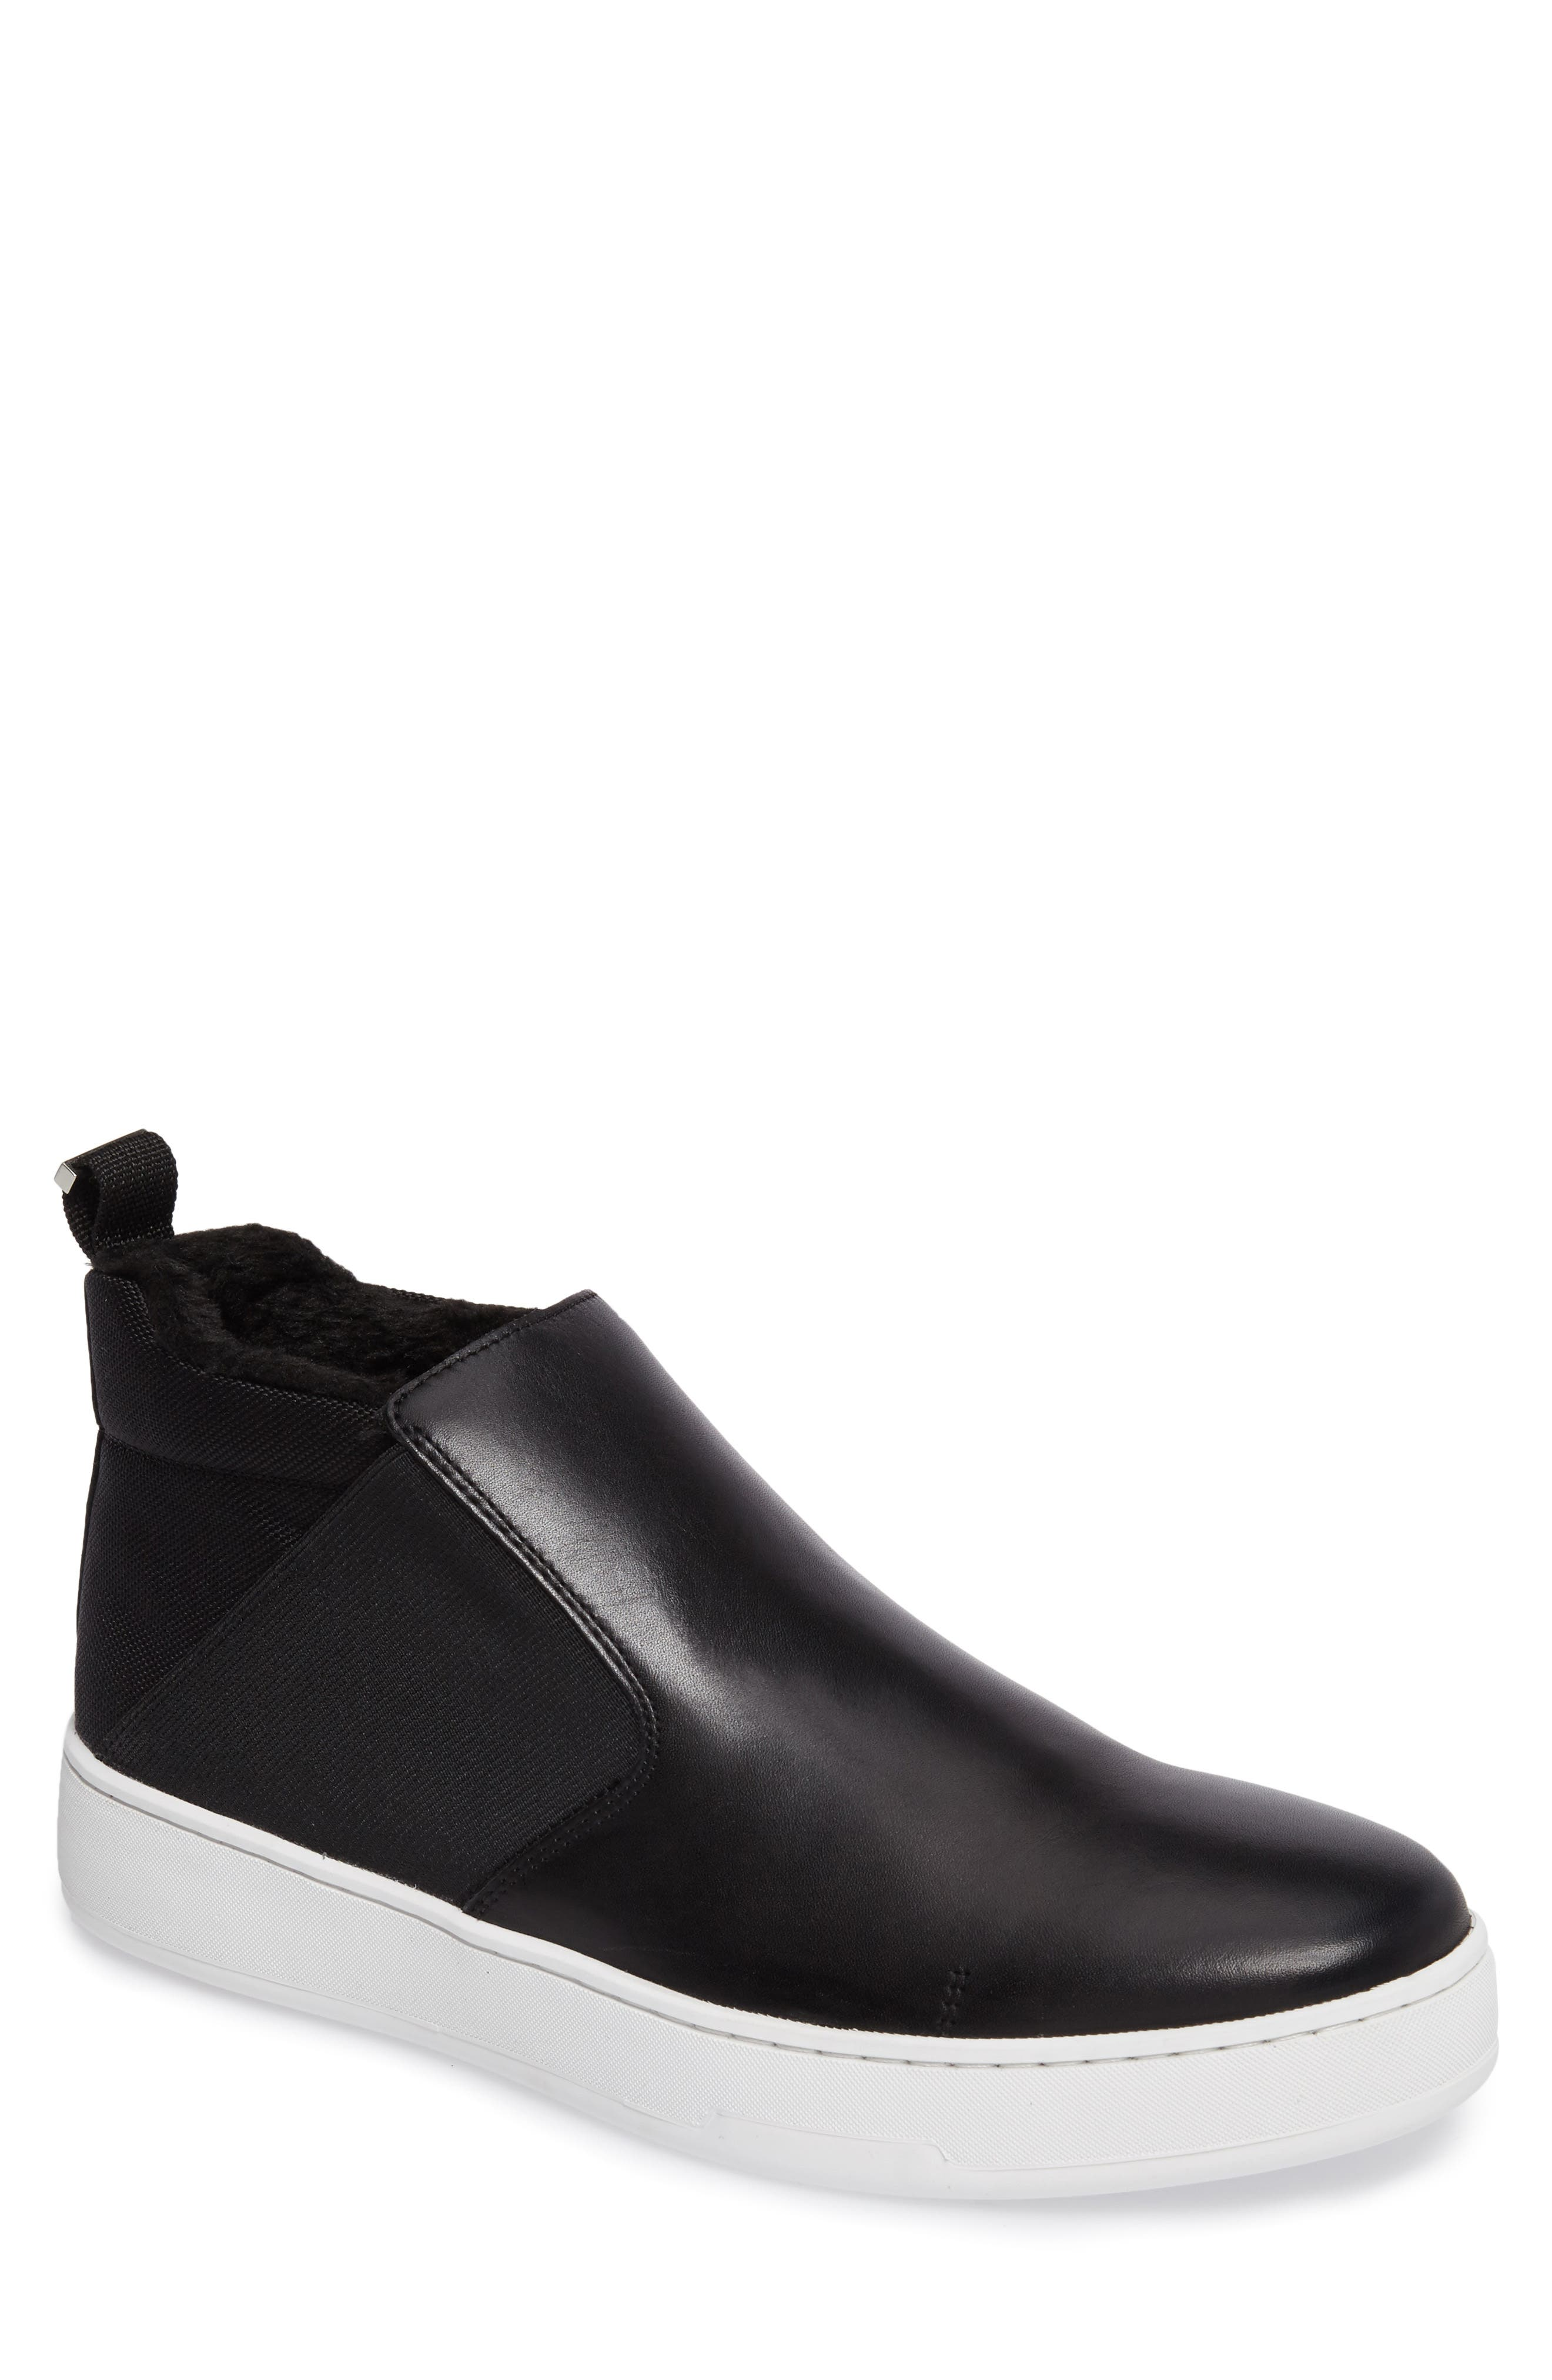 Noble Slip-On,                         Main,                         color, Black Leather